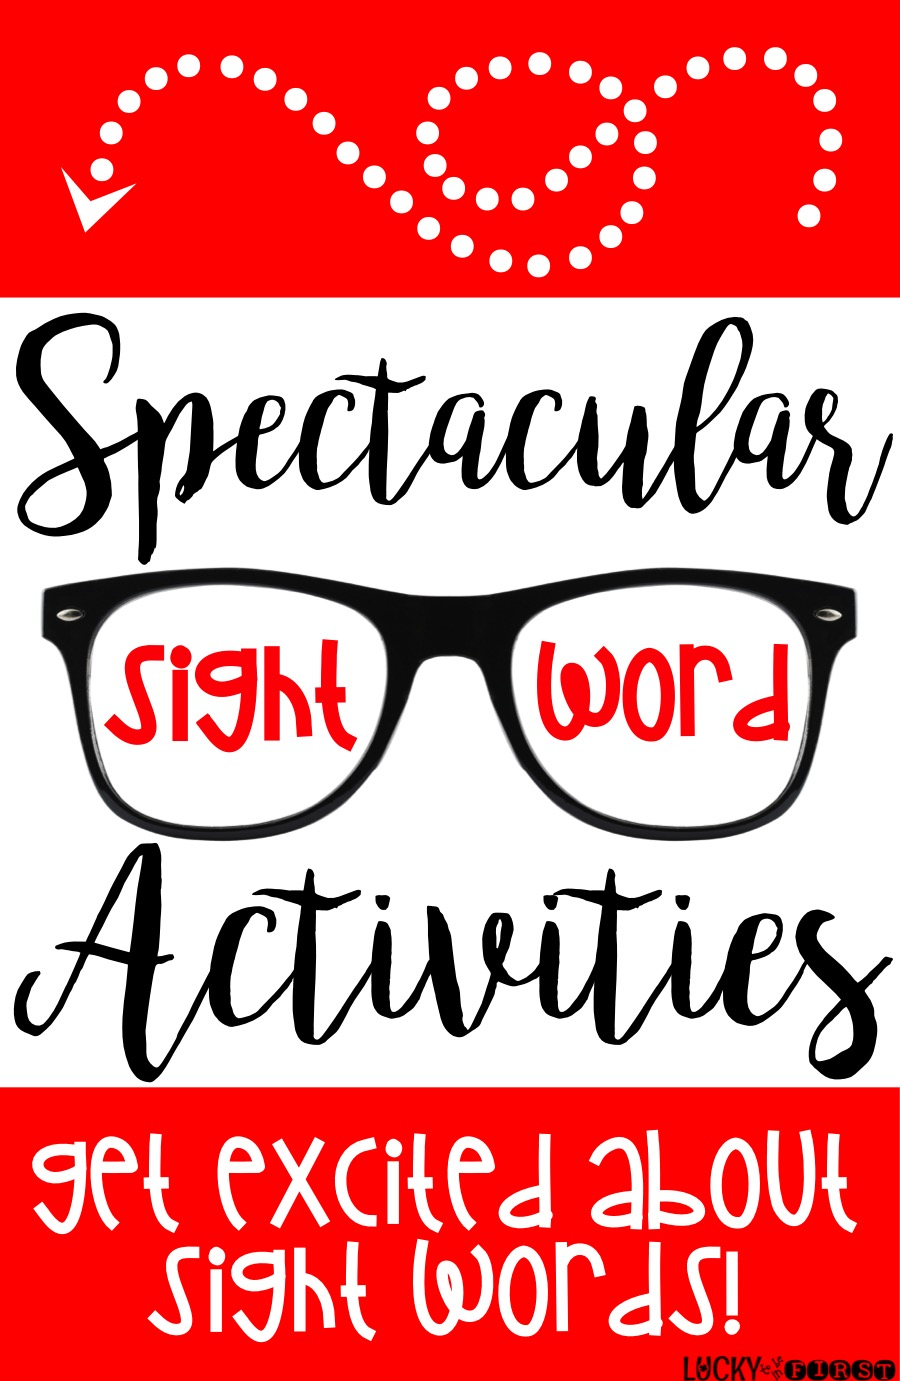 Spectacular Sight Words! Get excited about Sight Words with these motivating ideas!